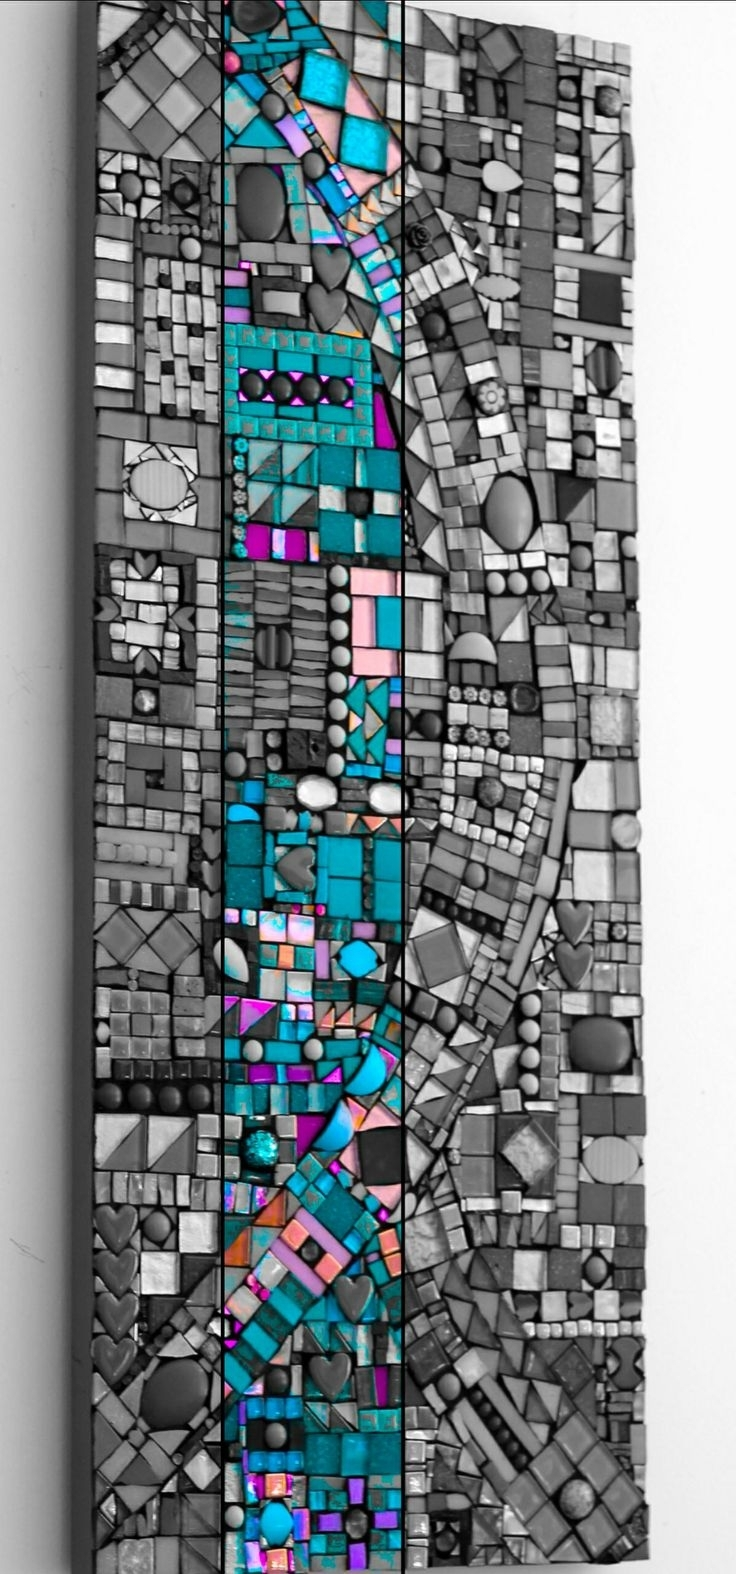 1052 Best Mosaic Abstract Images On Pinterest | Mosaic Art, Mosaic Intended For 2018 Abstract Mosaic Art On Wall (View 19 of 20)